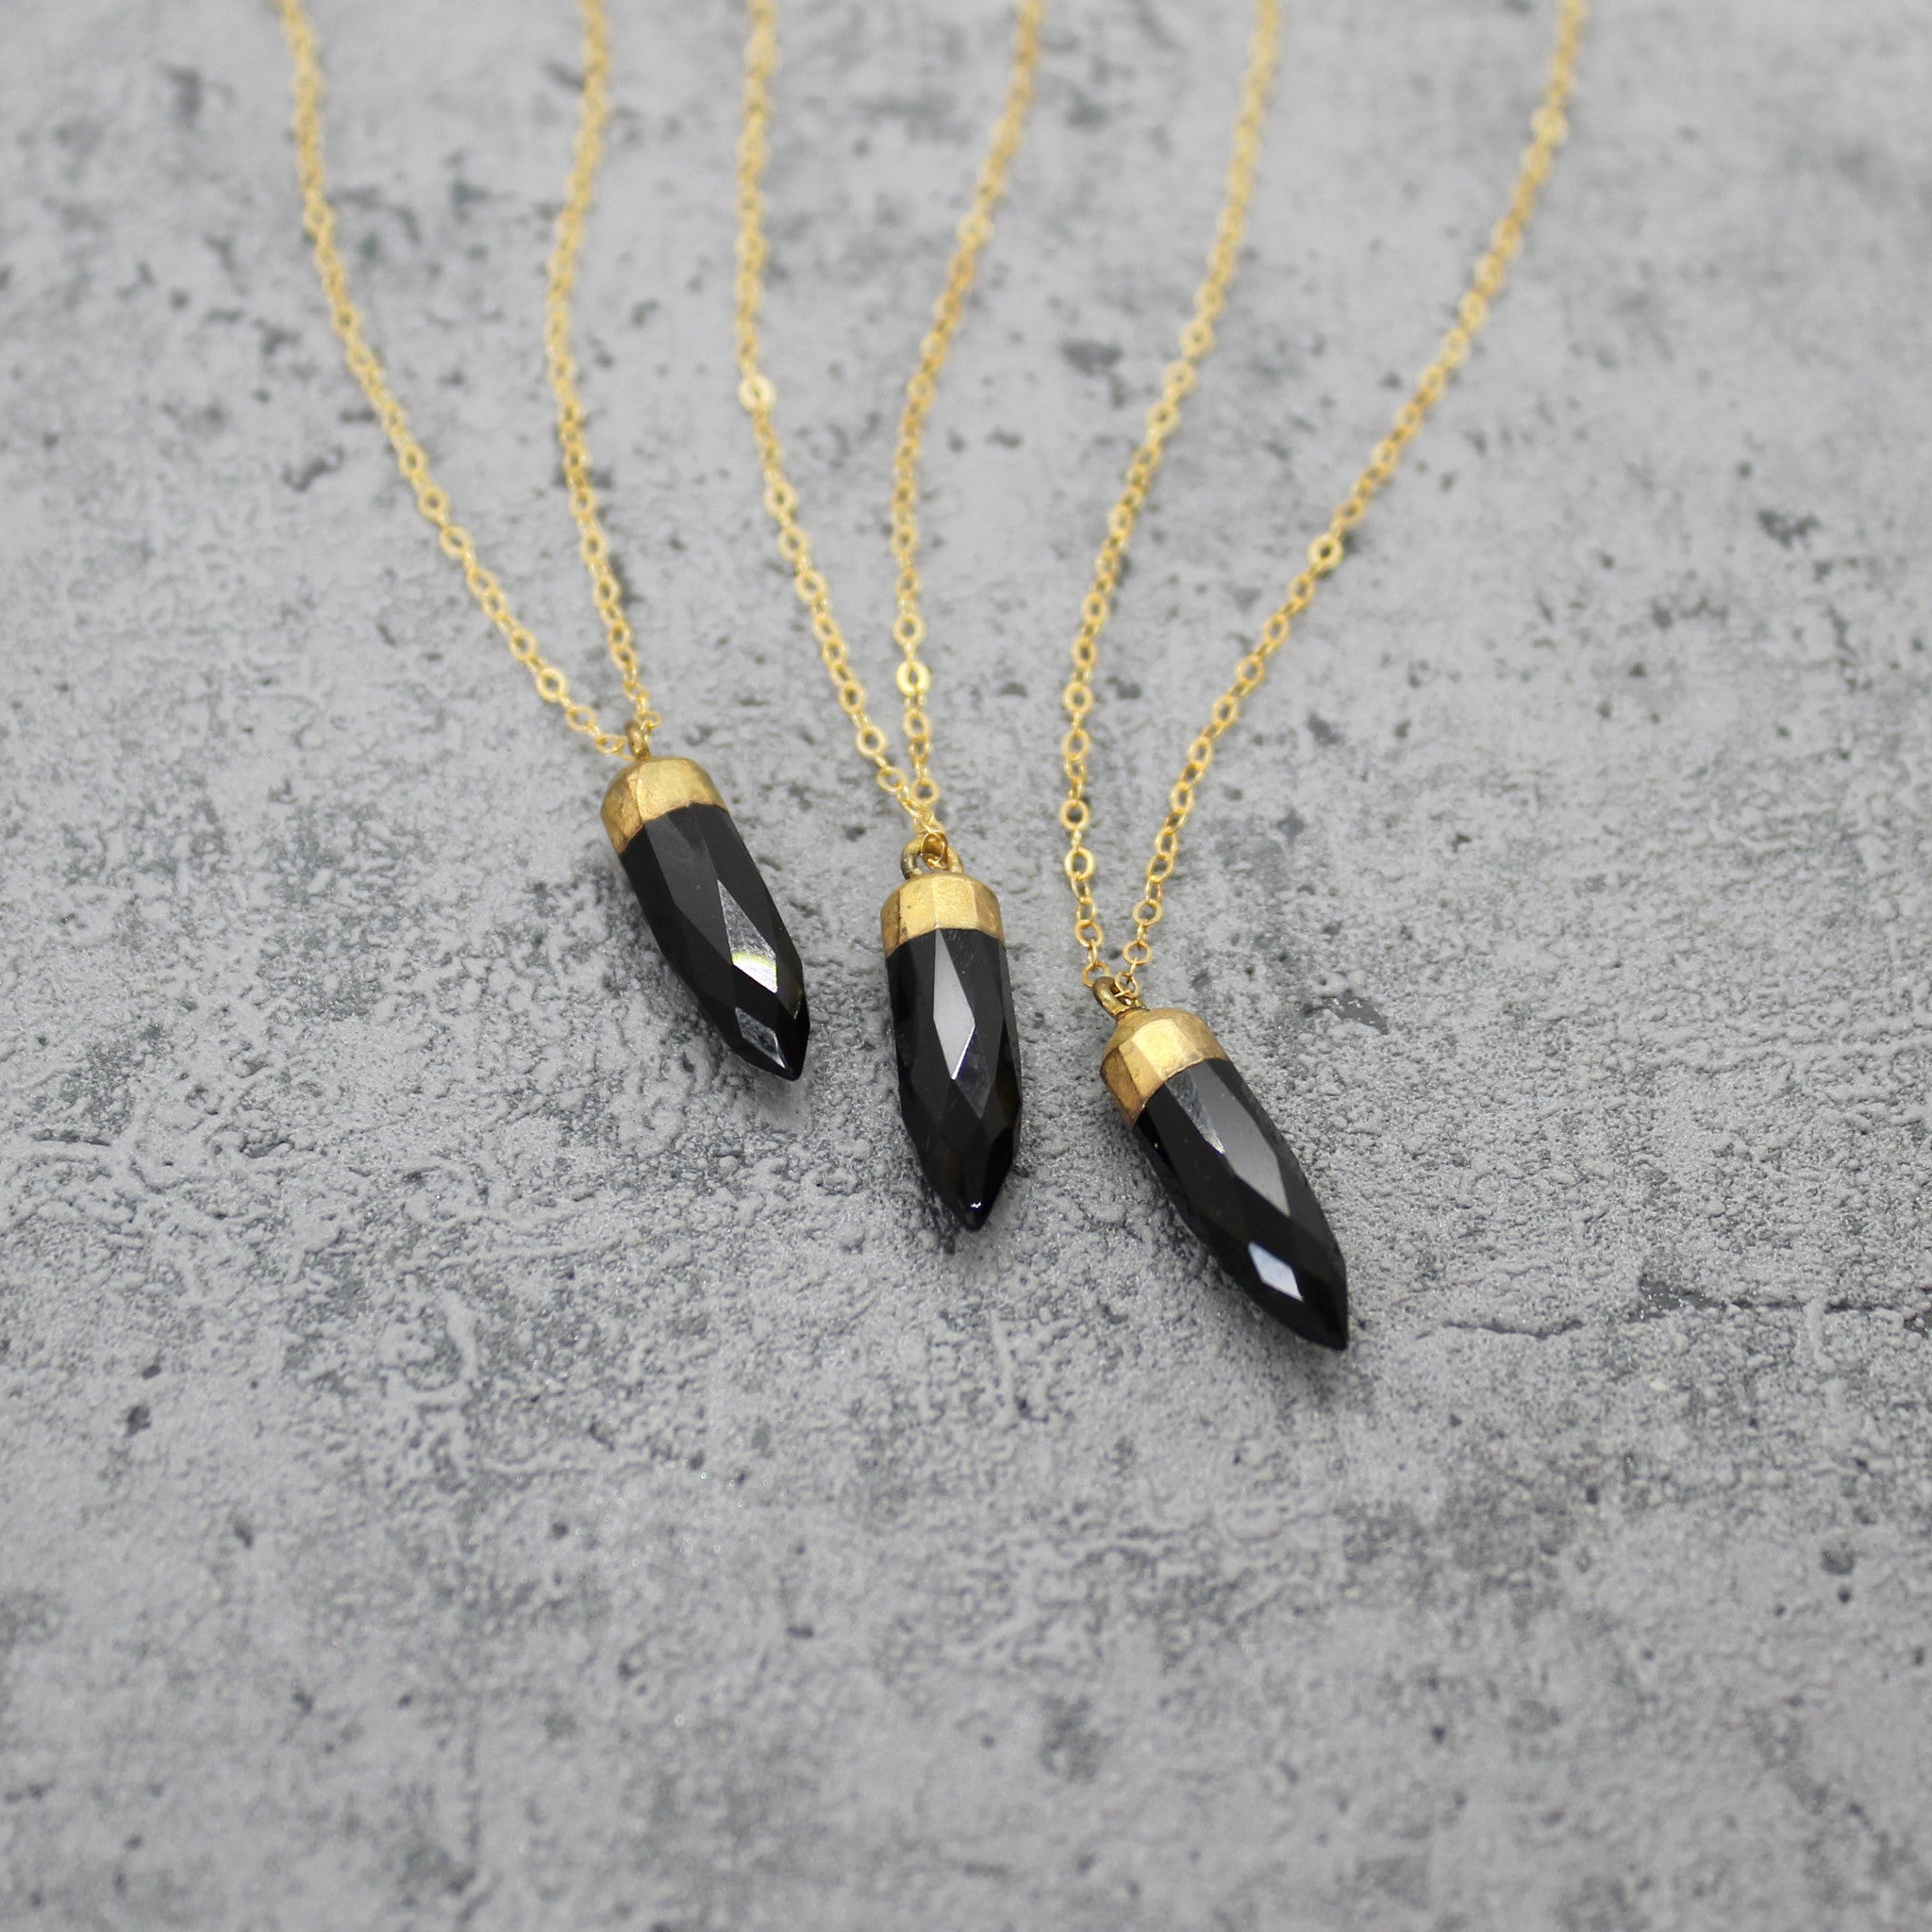 Black onyx stone spike necklace - Mara studio